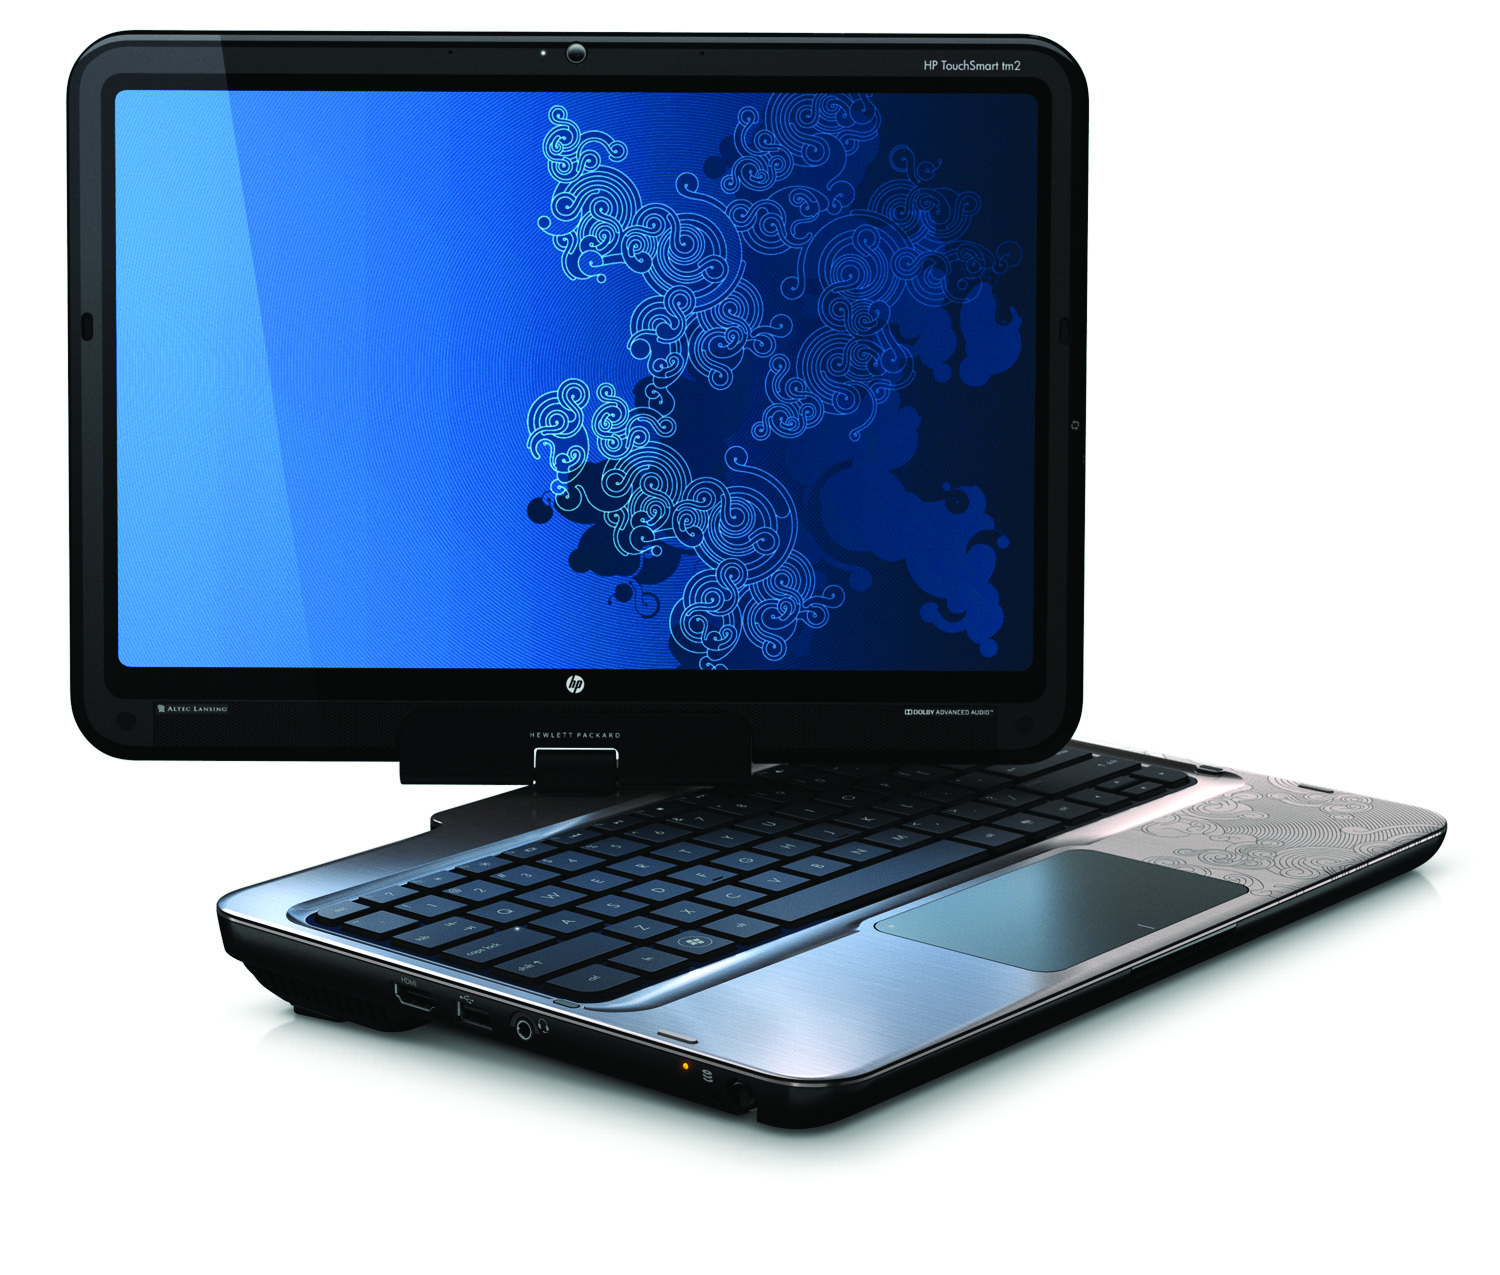 Ces hp touchsmart tm2 announced with intel for a quieter for Notebook tablet